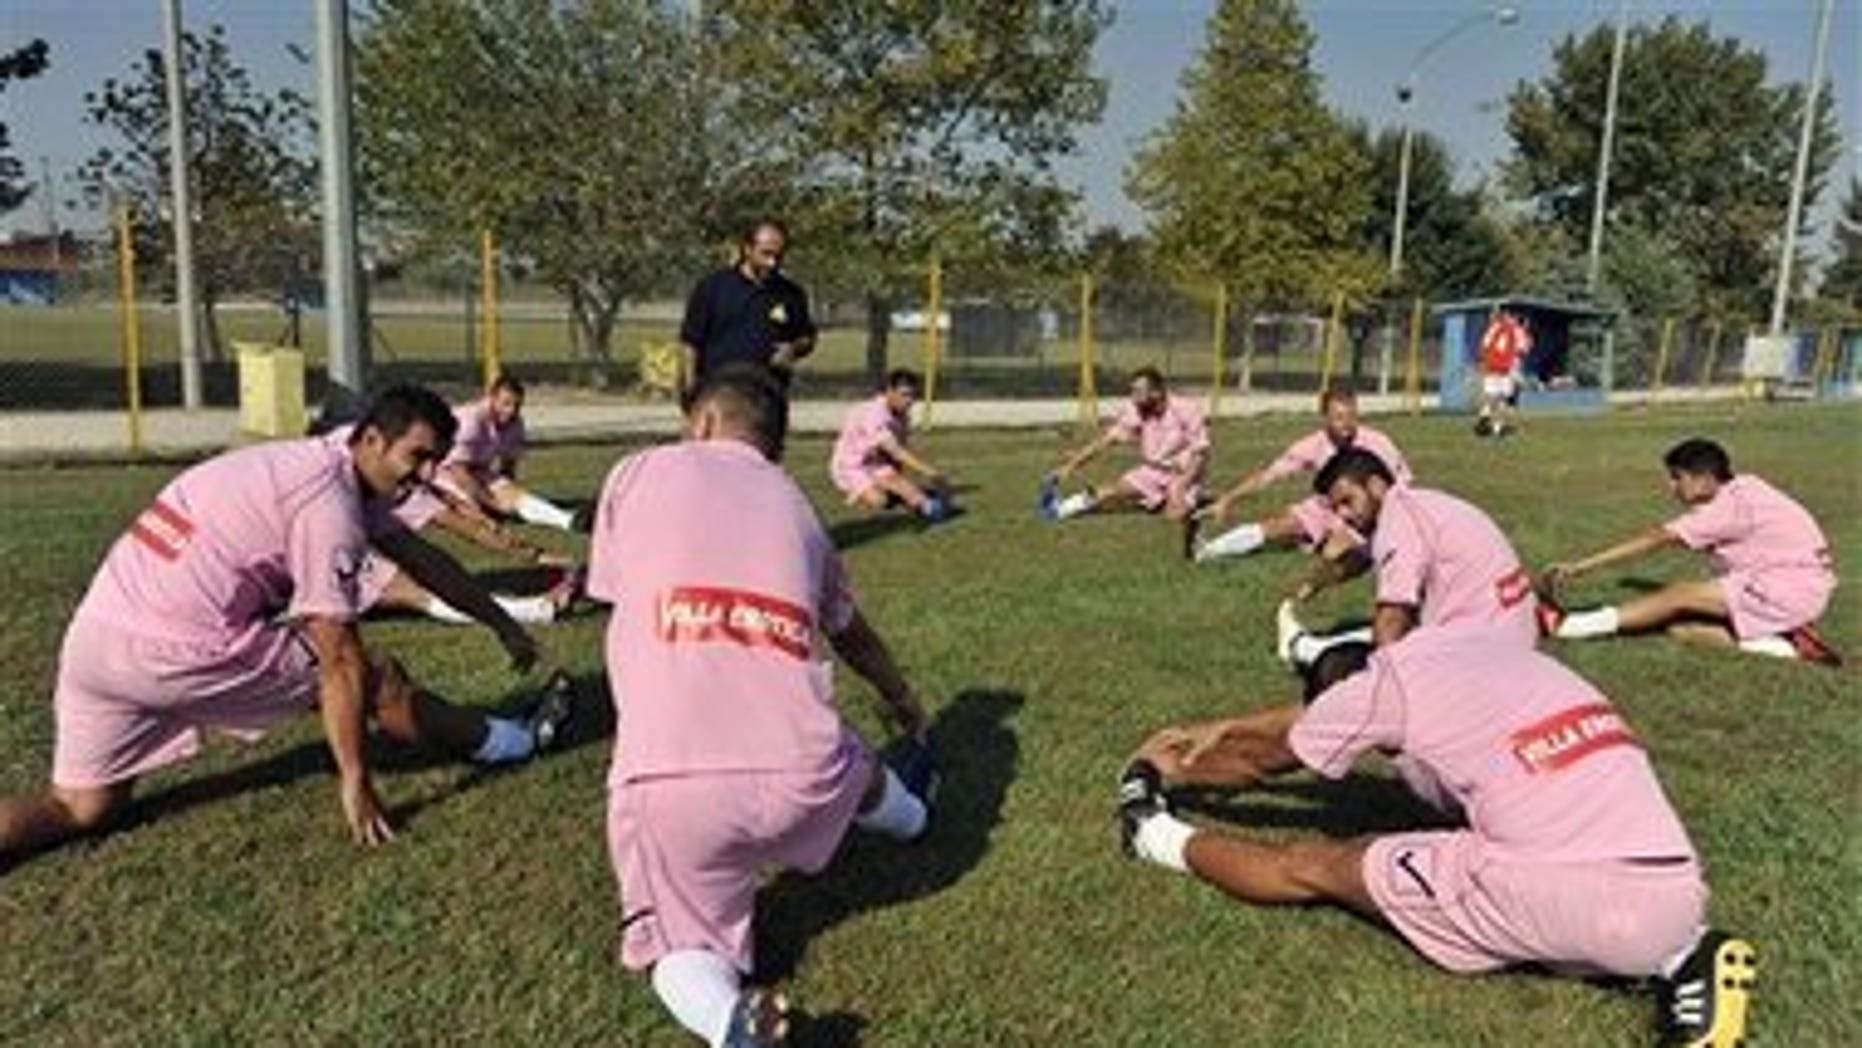 Voukefalas players, a small amateur soccer club, warm up before a local championship match in the city of Larissa, central Greece. A cash-strapped Greek soccer team has found a new way to pay the bills, with help from the world's oldest profession. Players are wearing bright pink practice jerseys emblazoned with the logos of the Villa Erotica and Soulaâs House of History, a pair of pastel-colored bordellos recruited to sponsor the team after drastic government spending cuts left the country's sports organizations facing ruin.